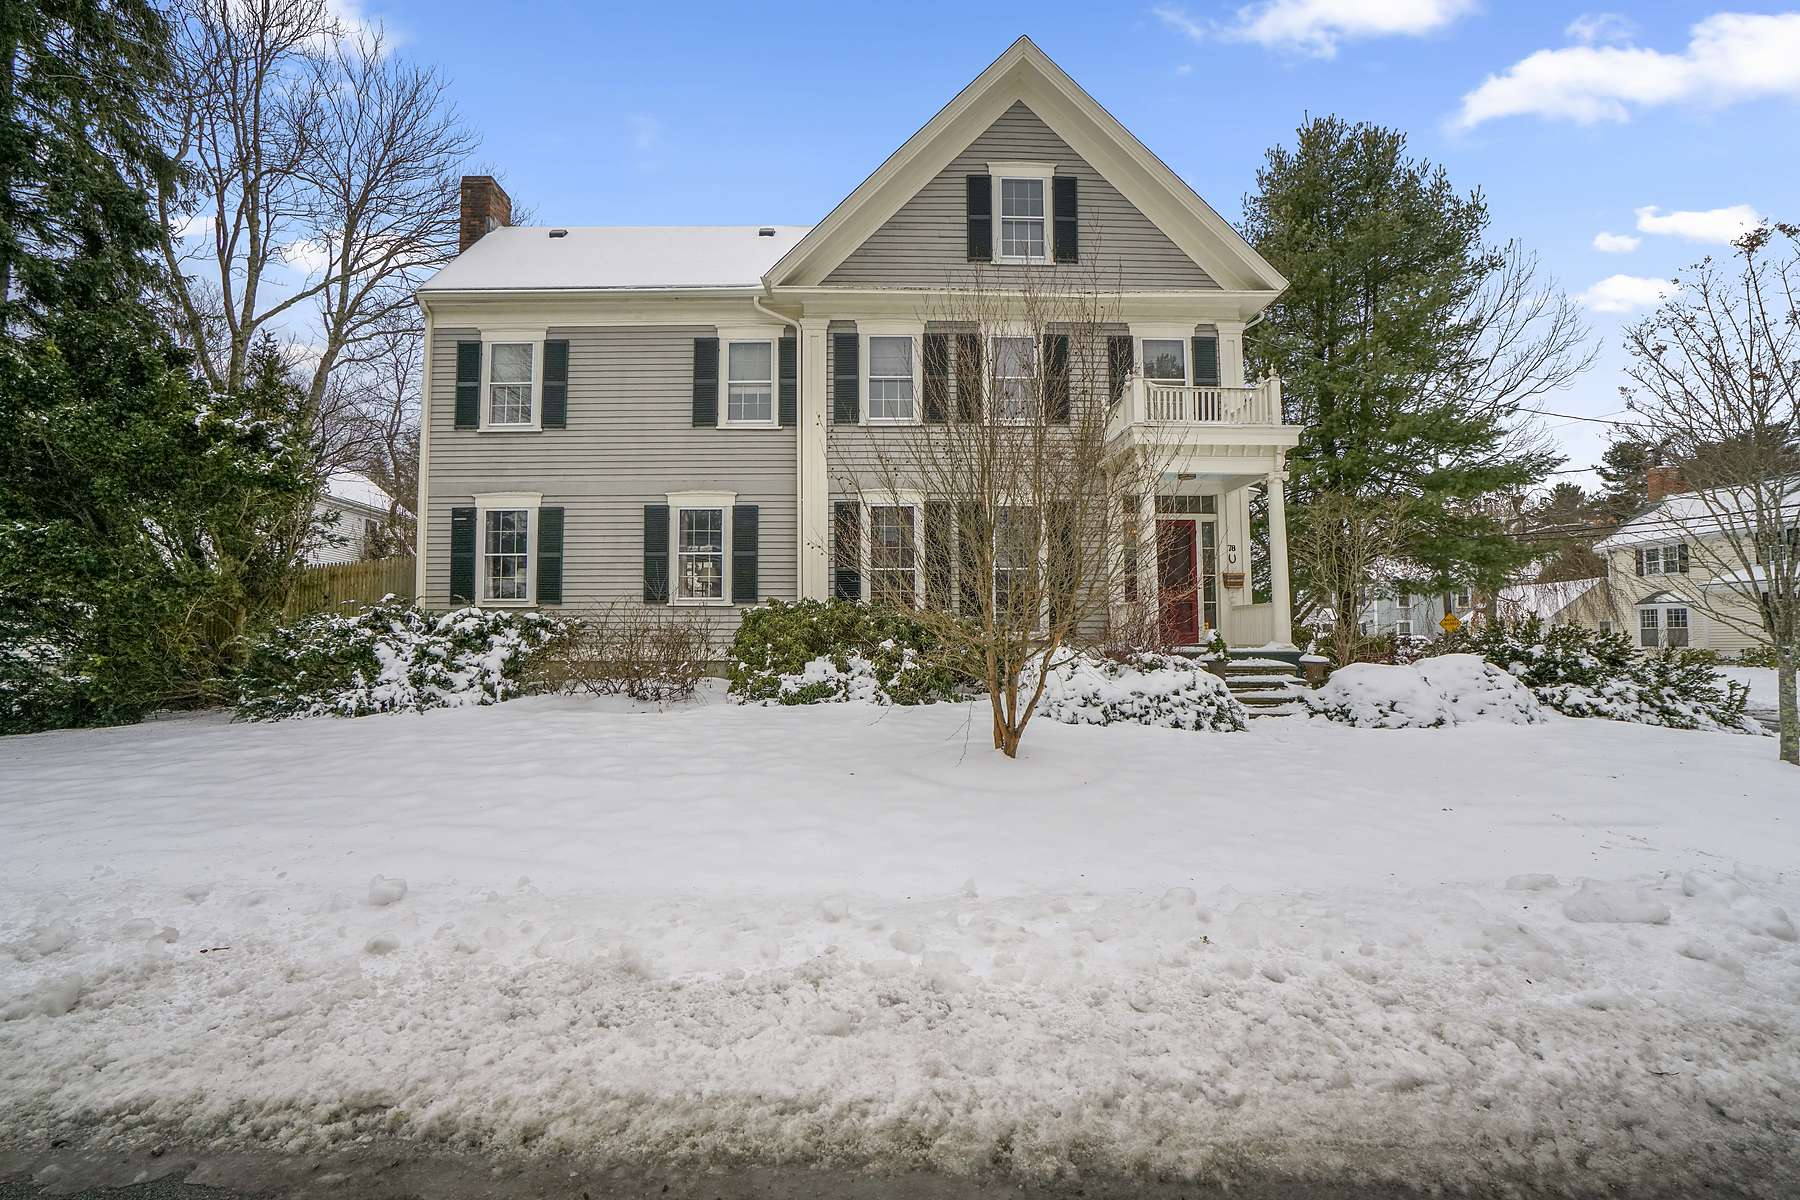 Single Family Home for Active at 78 Village Ave, Precinct One, Dedham 78 Village Avenue Precinct One Dedham, Massachusetts 02026 United States